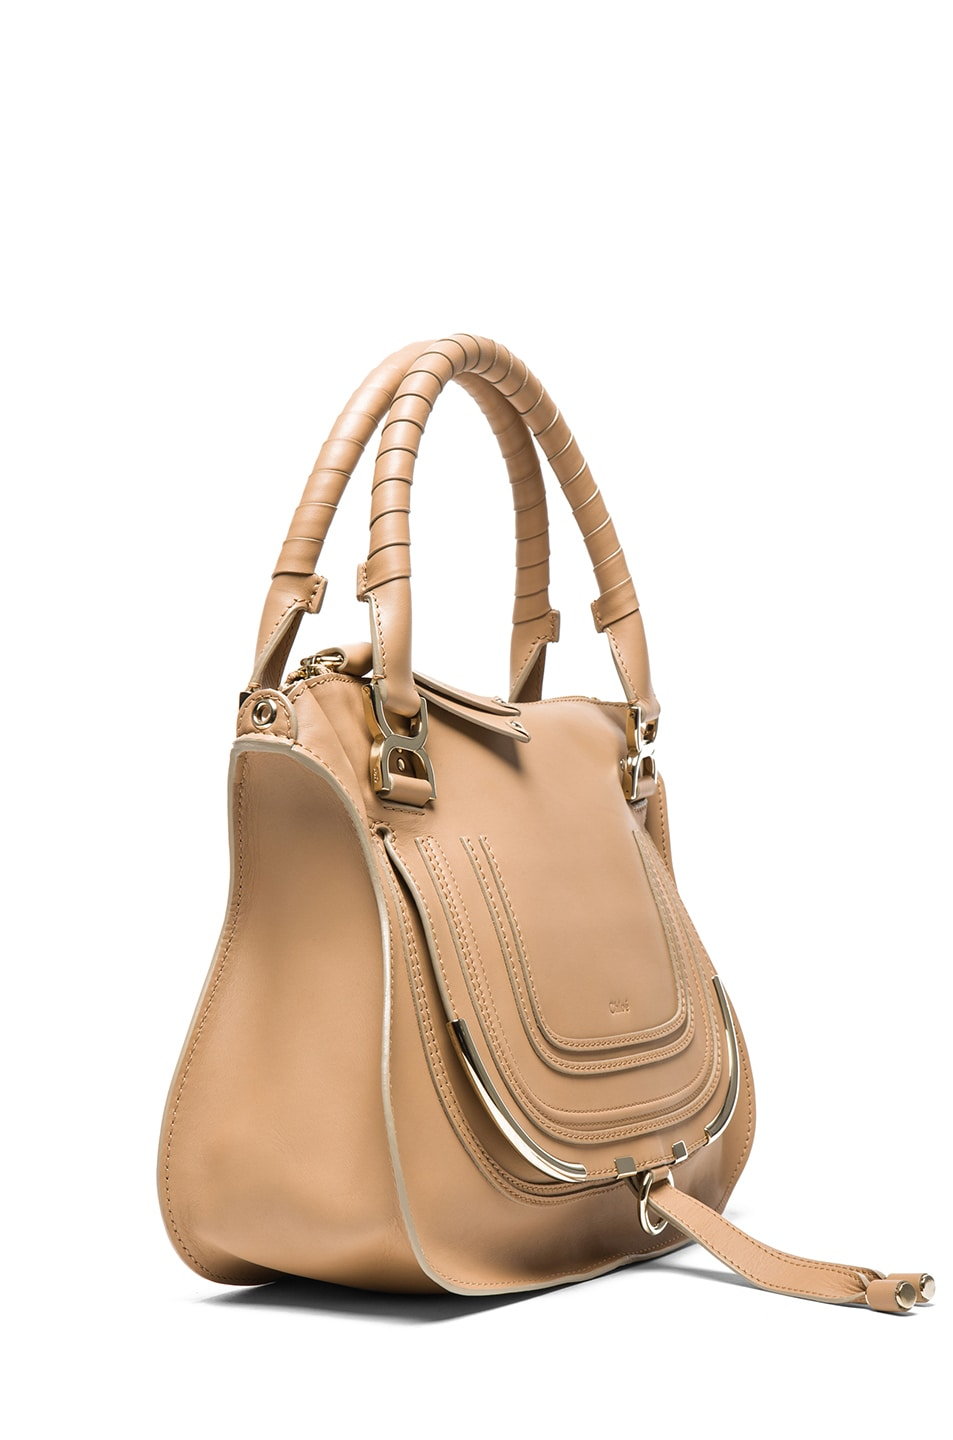 35f201b271eff Image 3 of Chloe Medium Marcie Shoulder Bag in Wet Sand